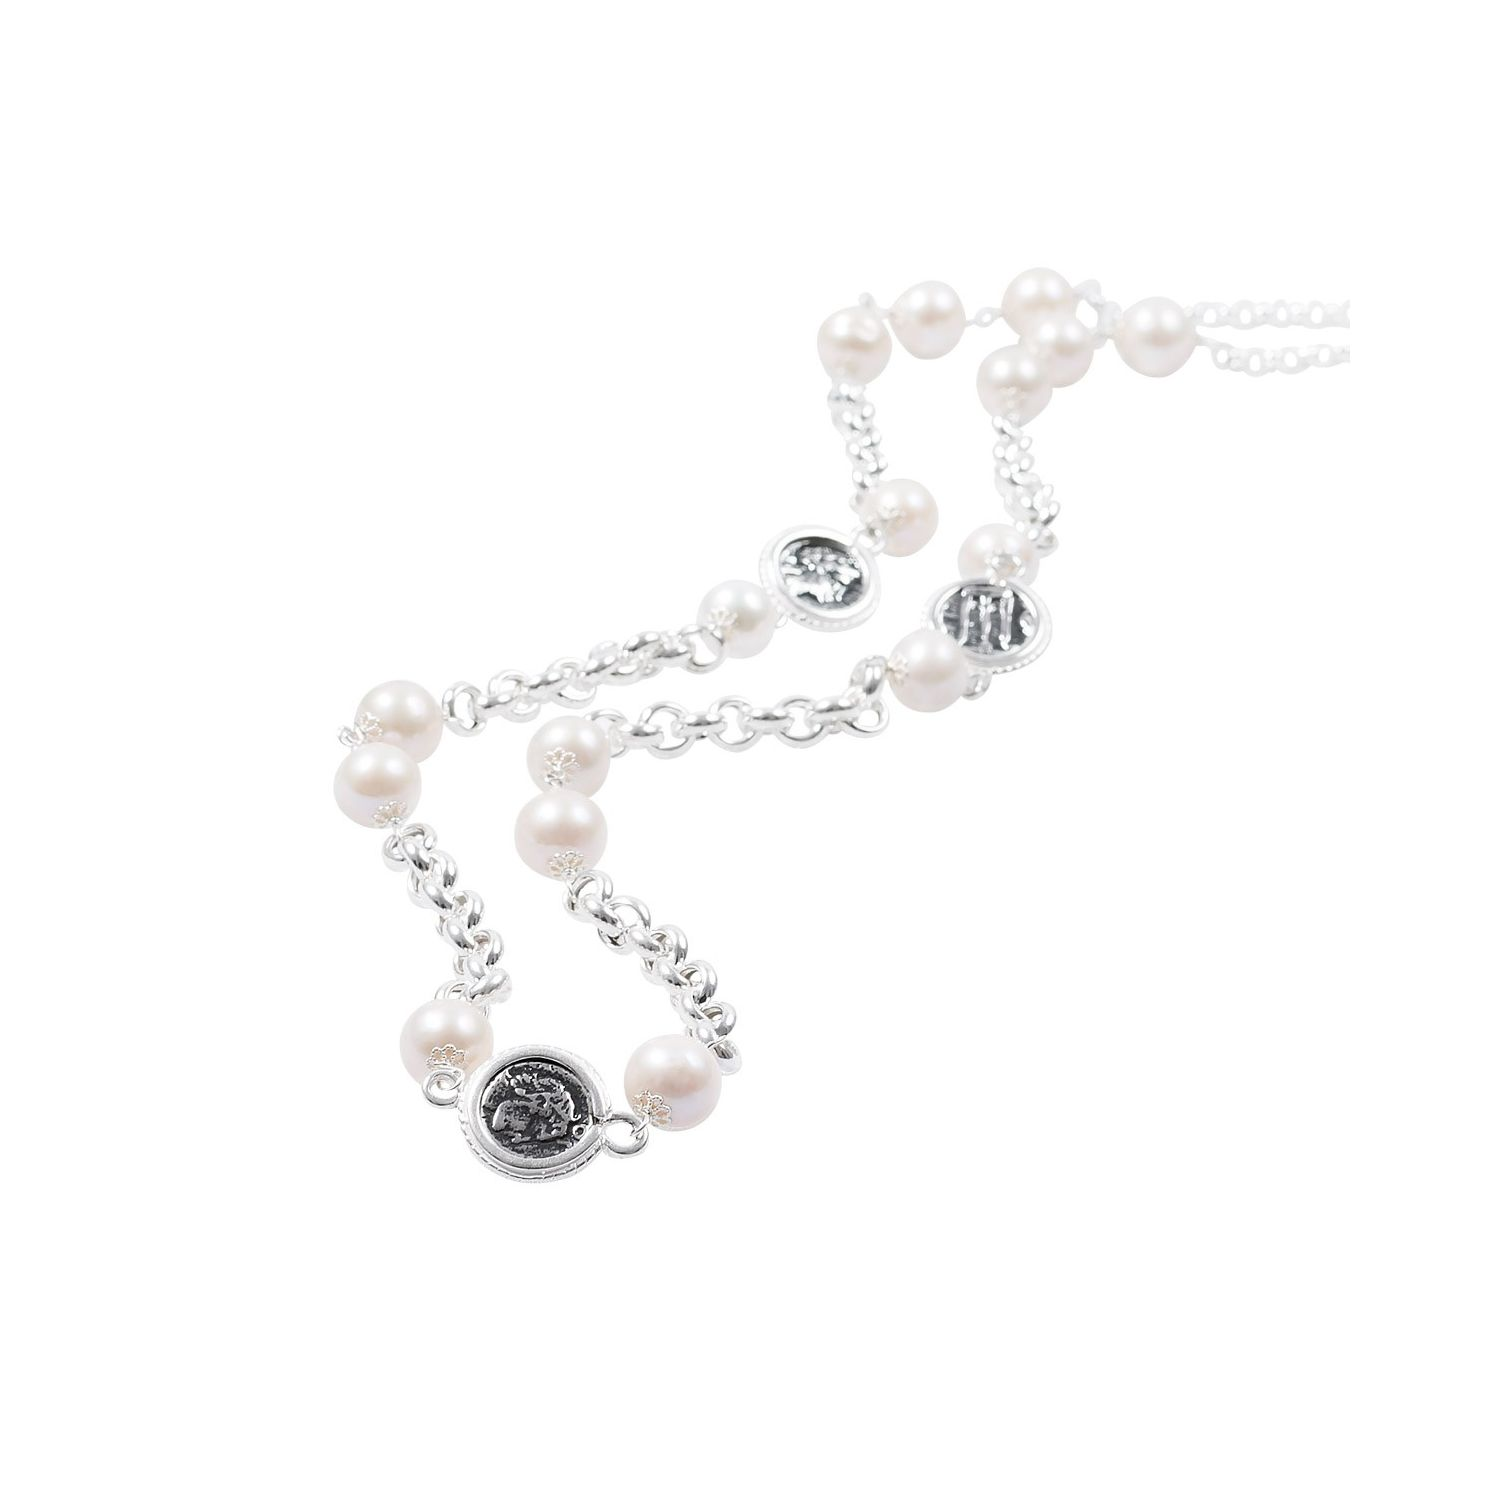 Pearls and Coins Necklace (40018)